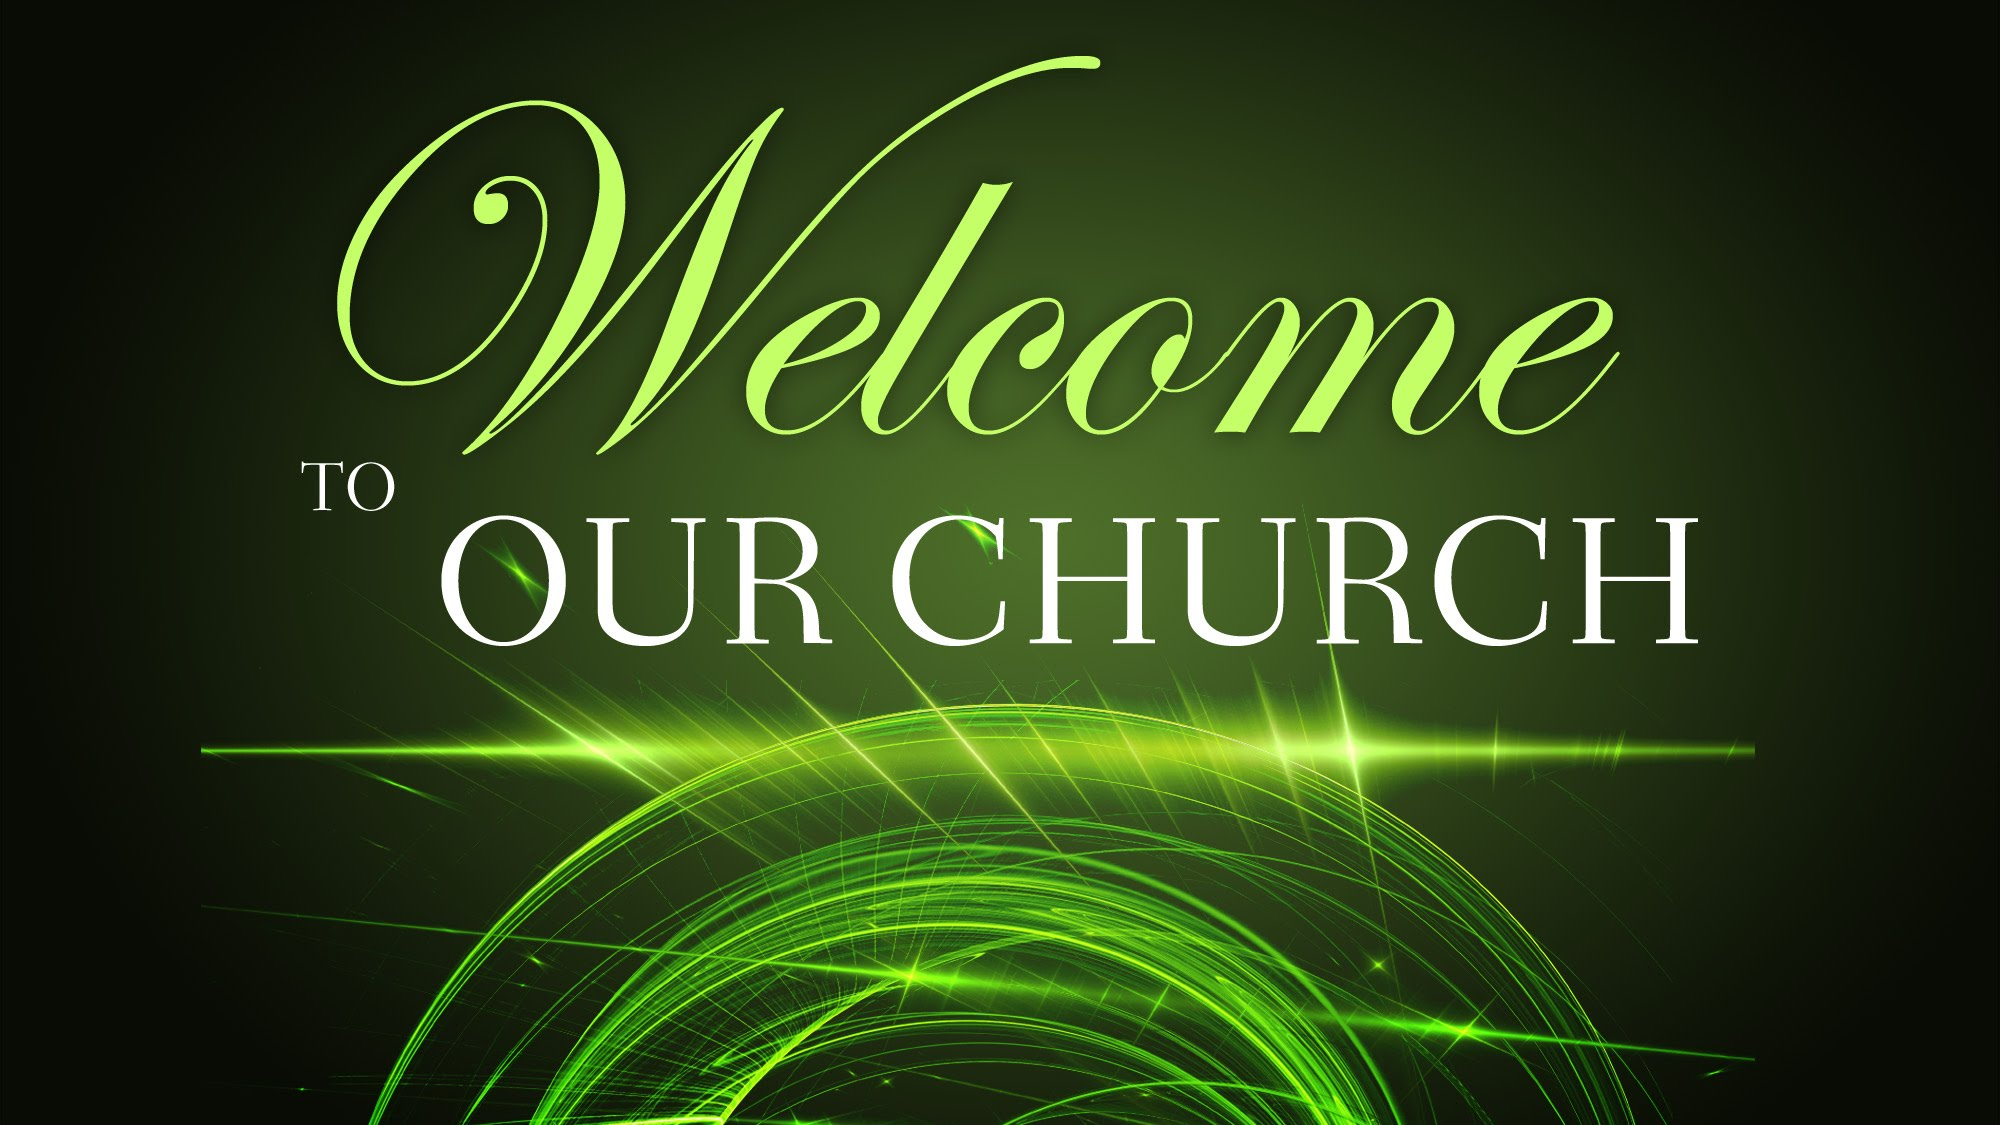 church history clipart - Clipground